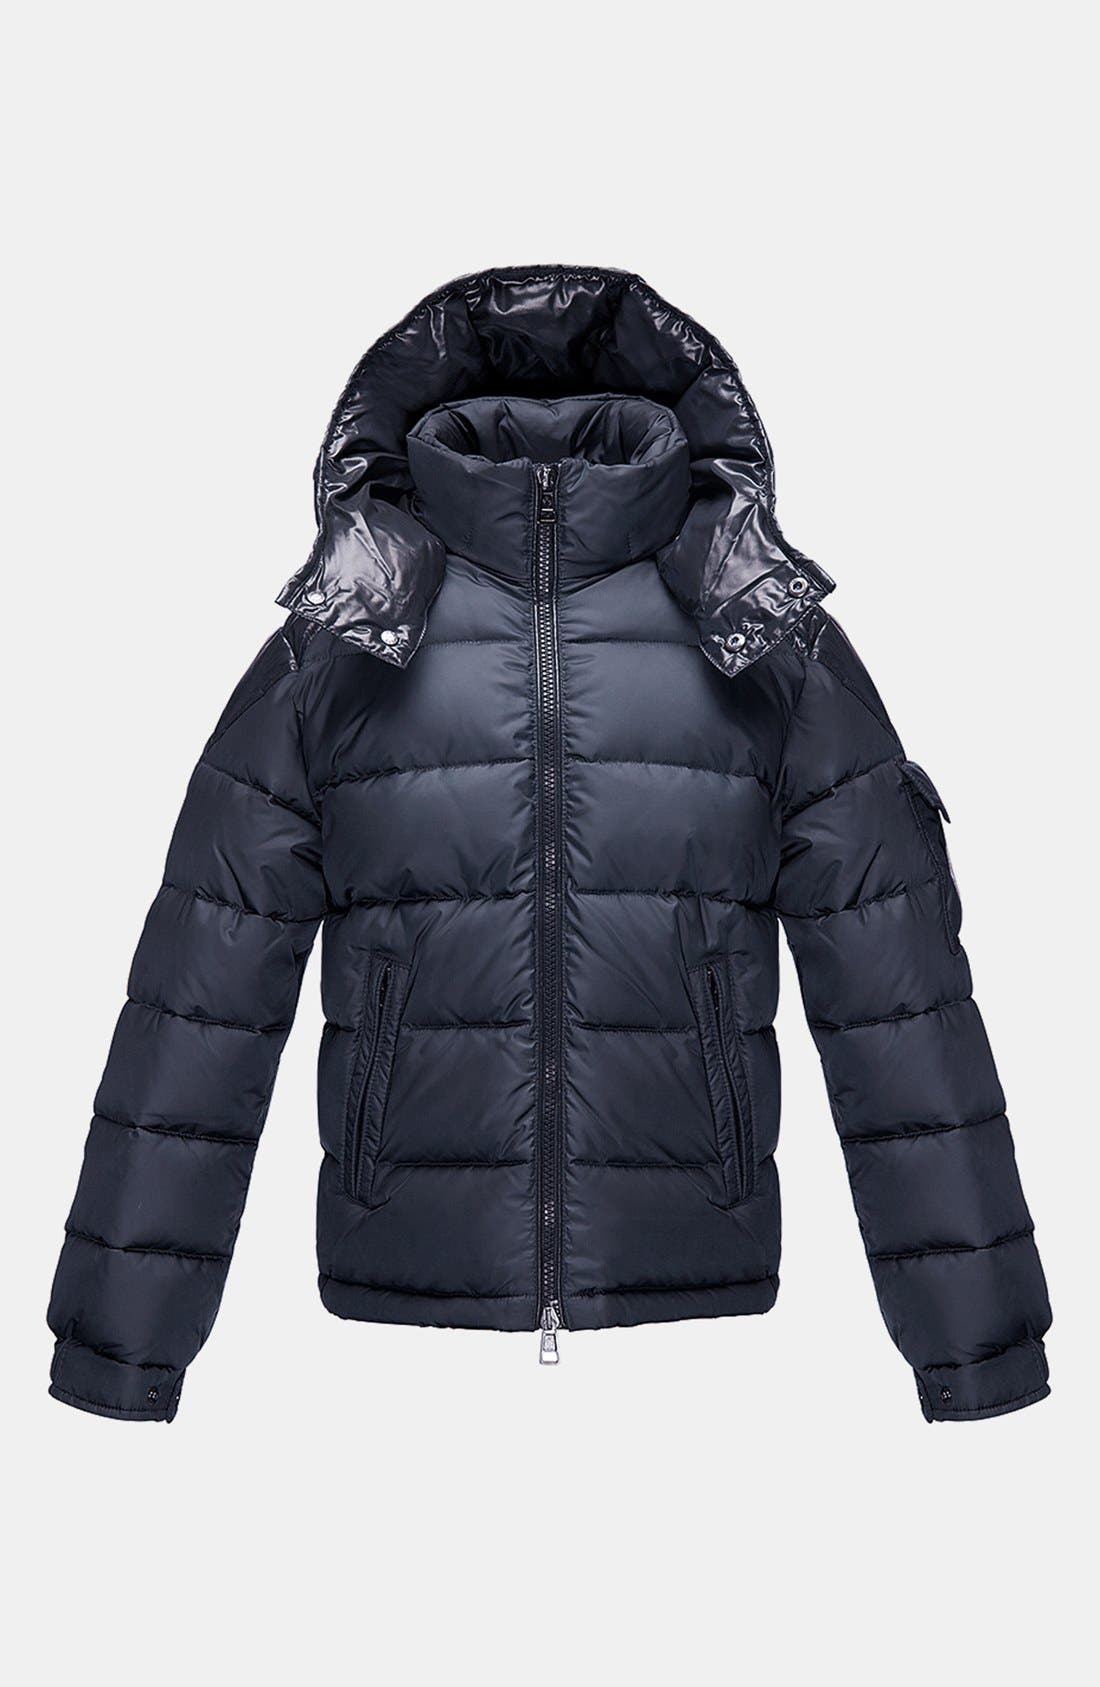 Main Image - Moncler 'Chevalier' Hooded Down Jacket (Toddler Boys, Little Boys & Big Boys)